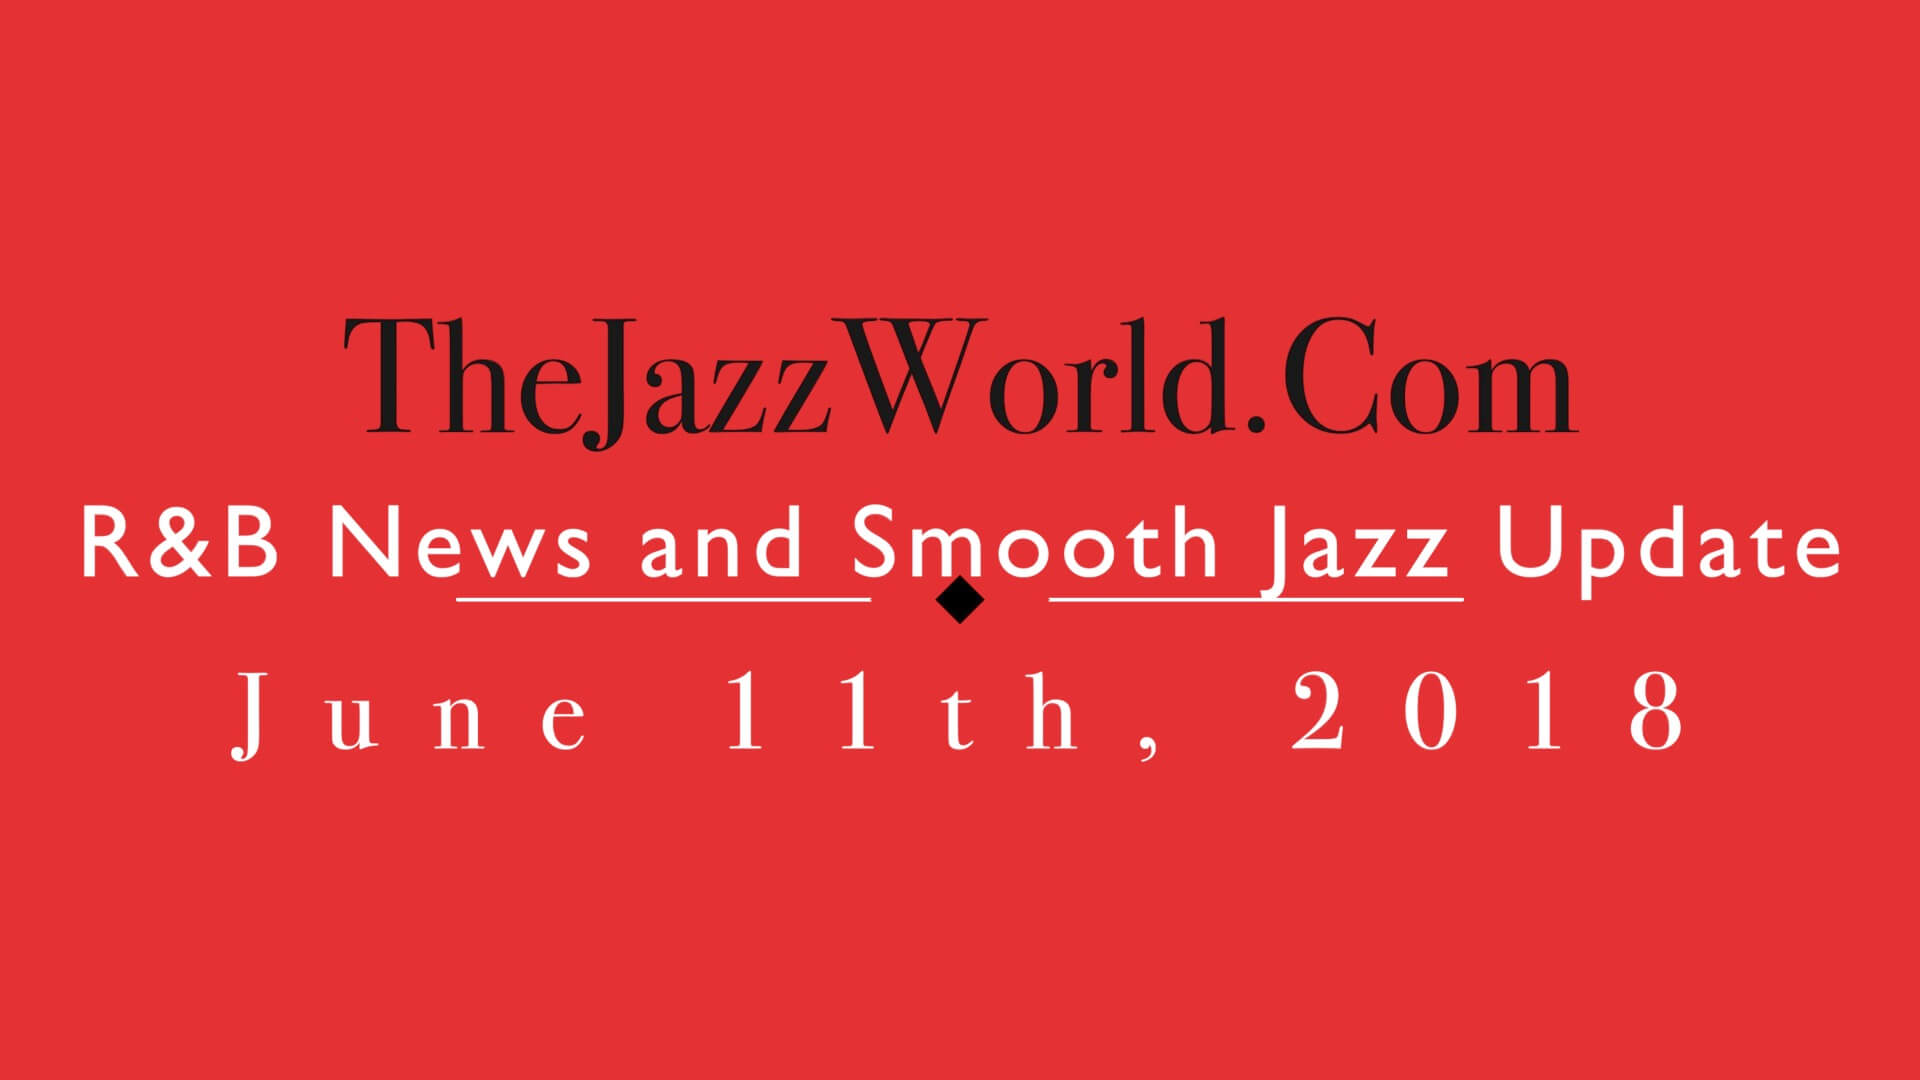 Latest R&B News and Smooth Jazz Update June 11th